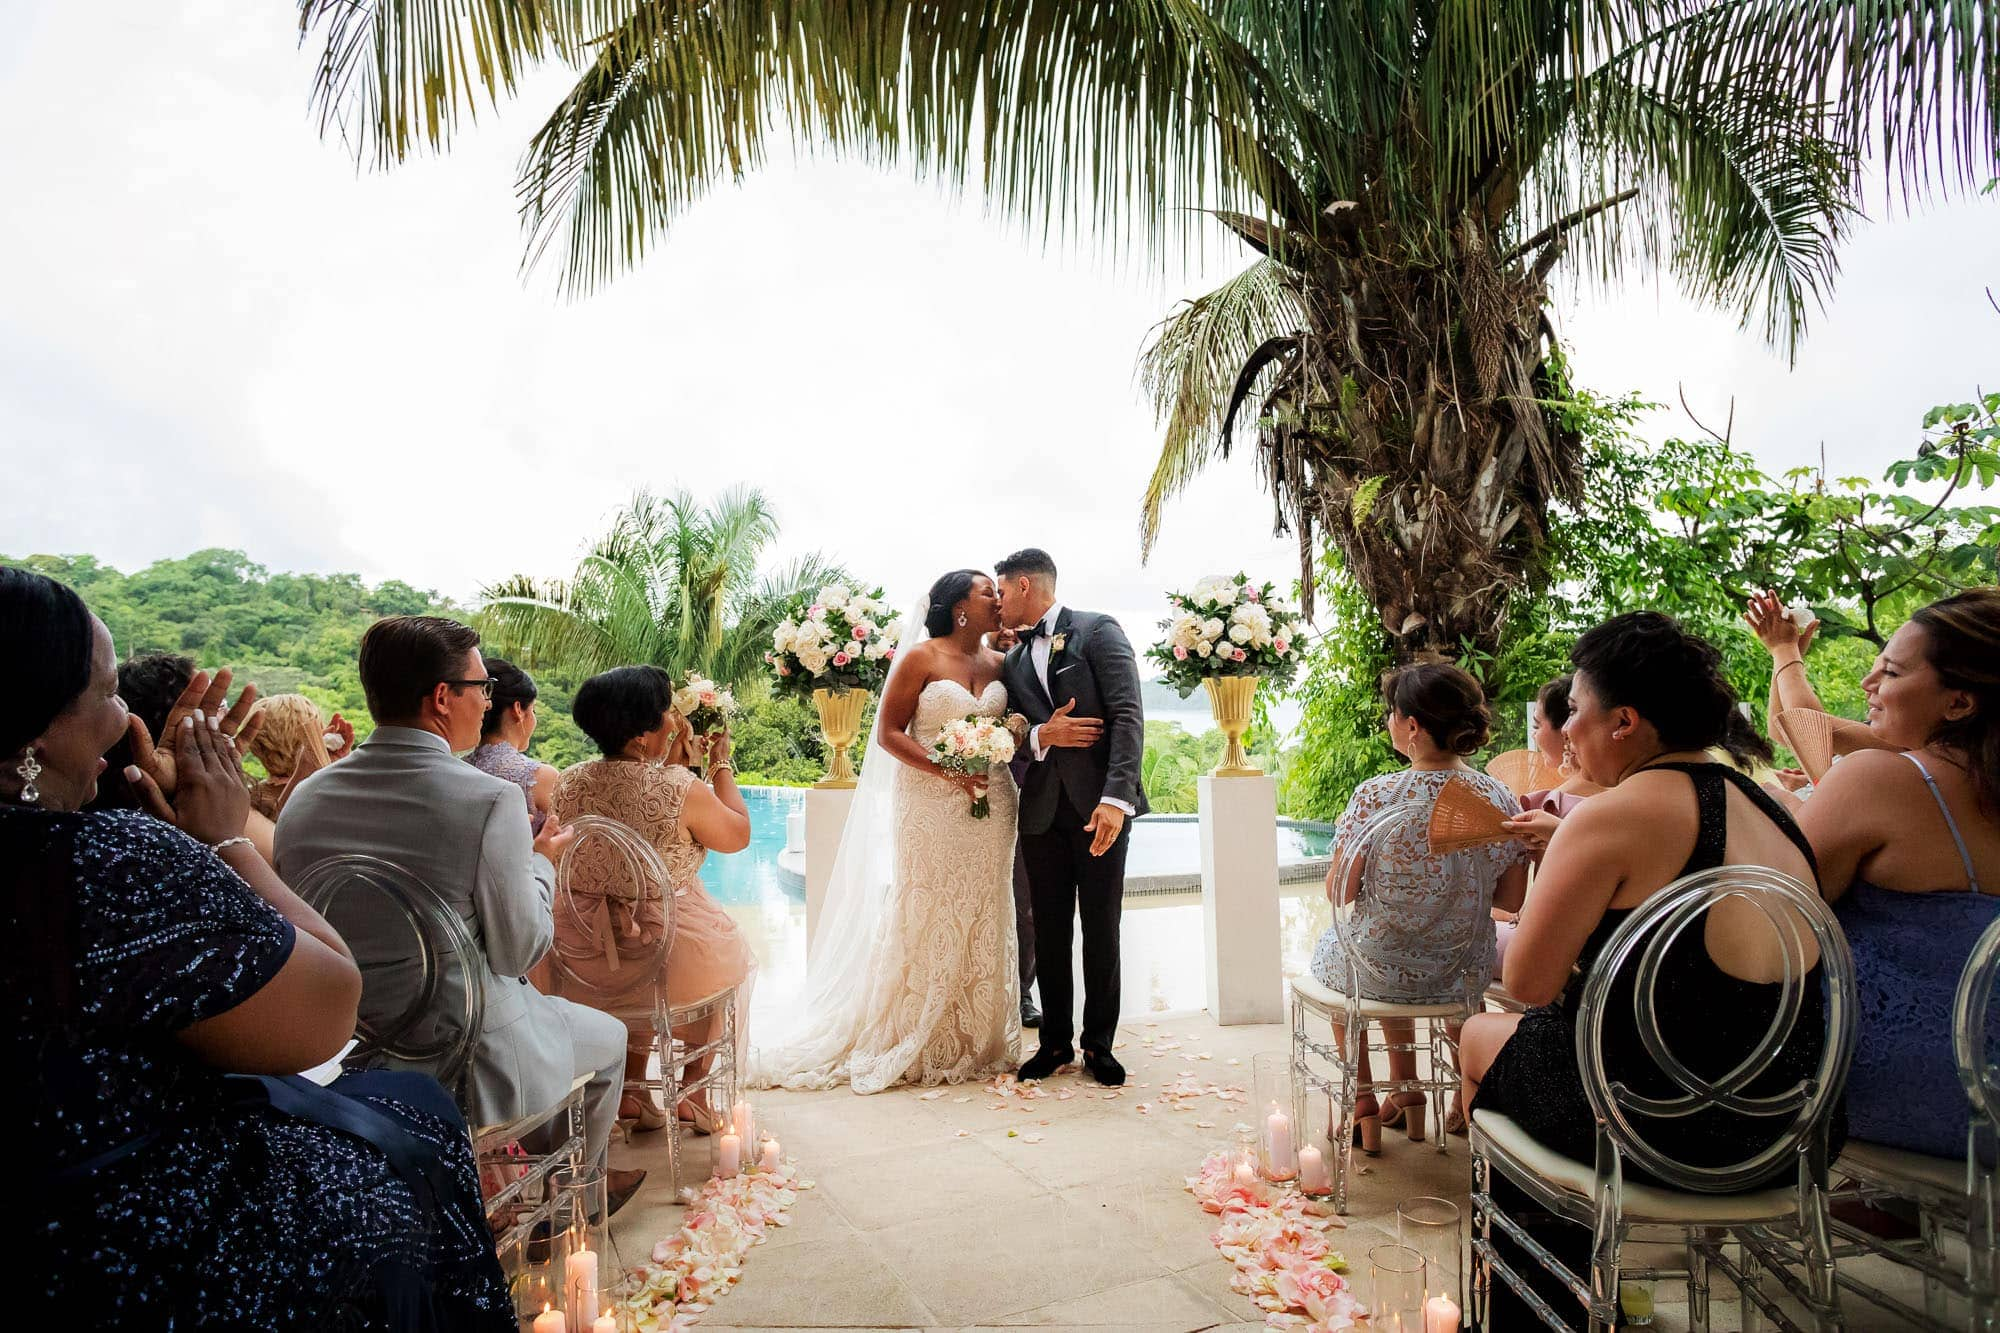 Wedding venue ideas: in front a pool with a breathtaking view